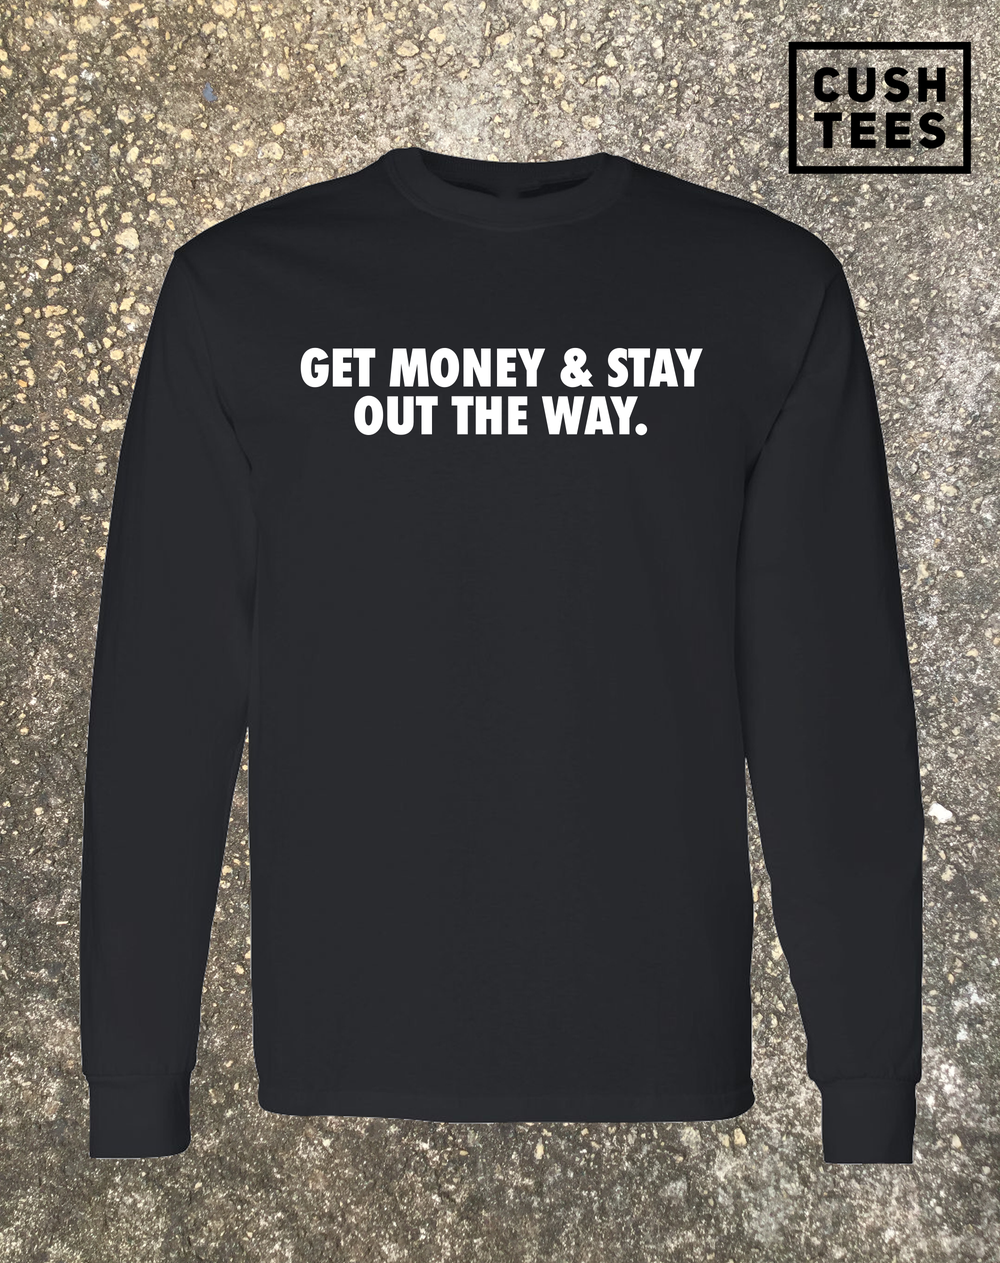 Get money & stay out the way (Unisex) Long sleeve shirt